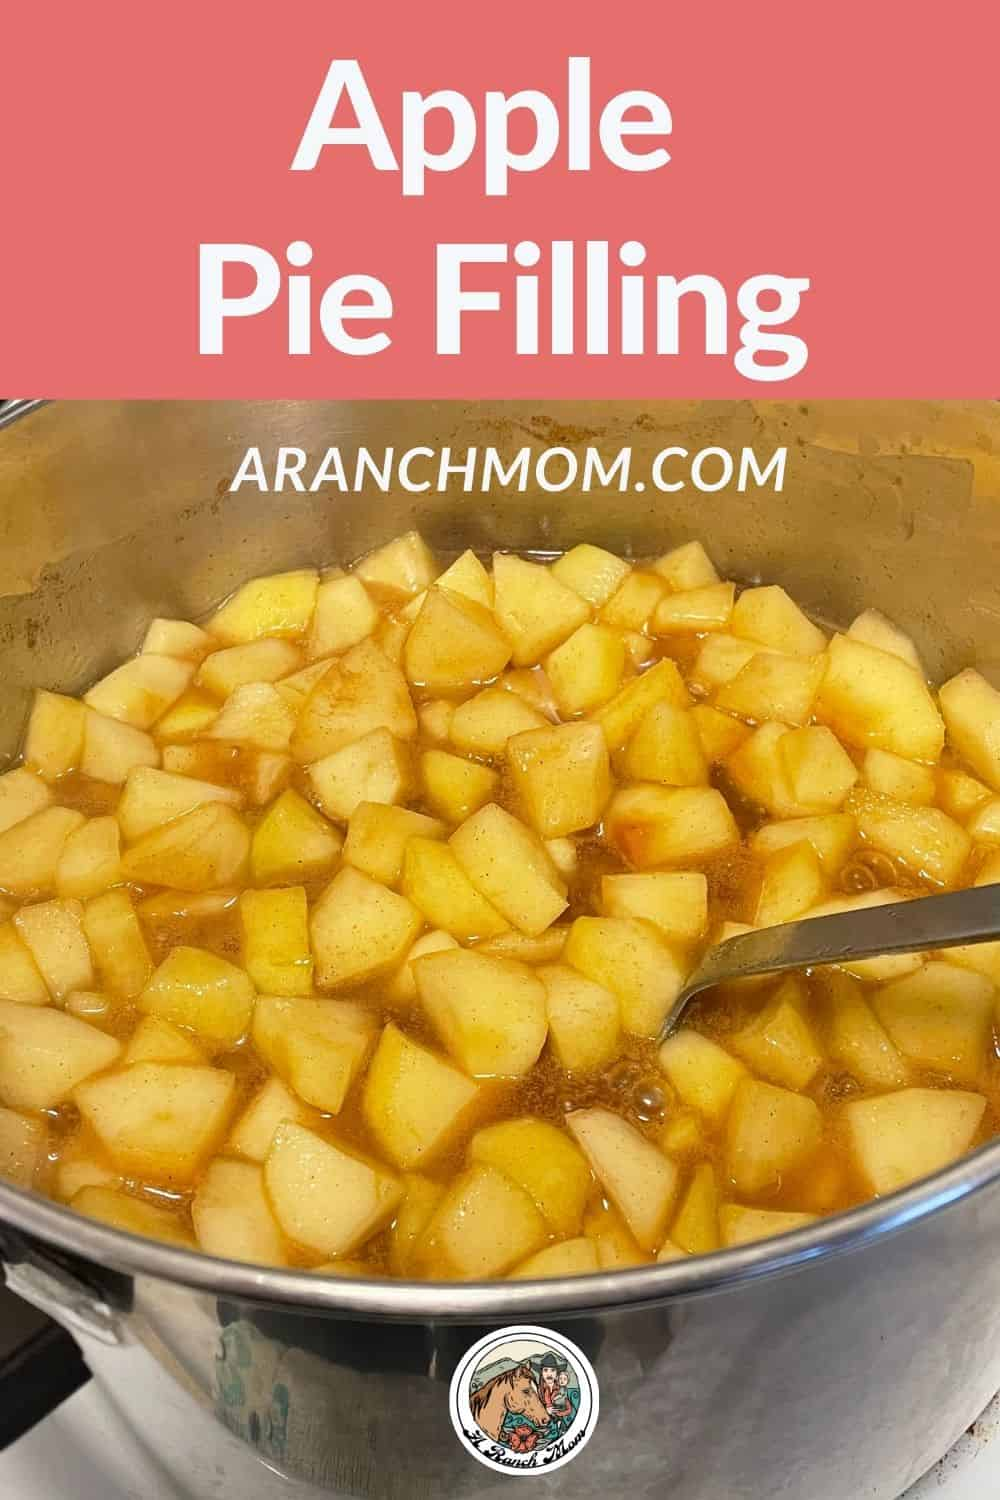 apple pie filling with text overlay